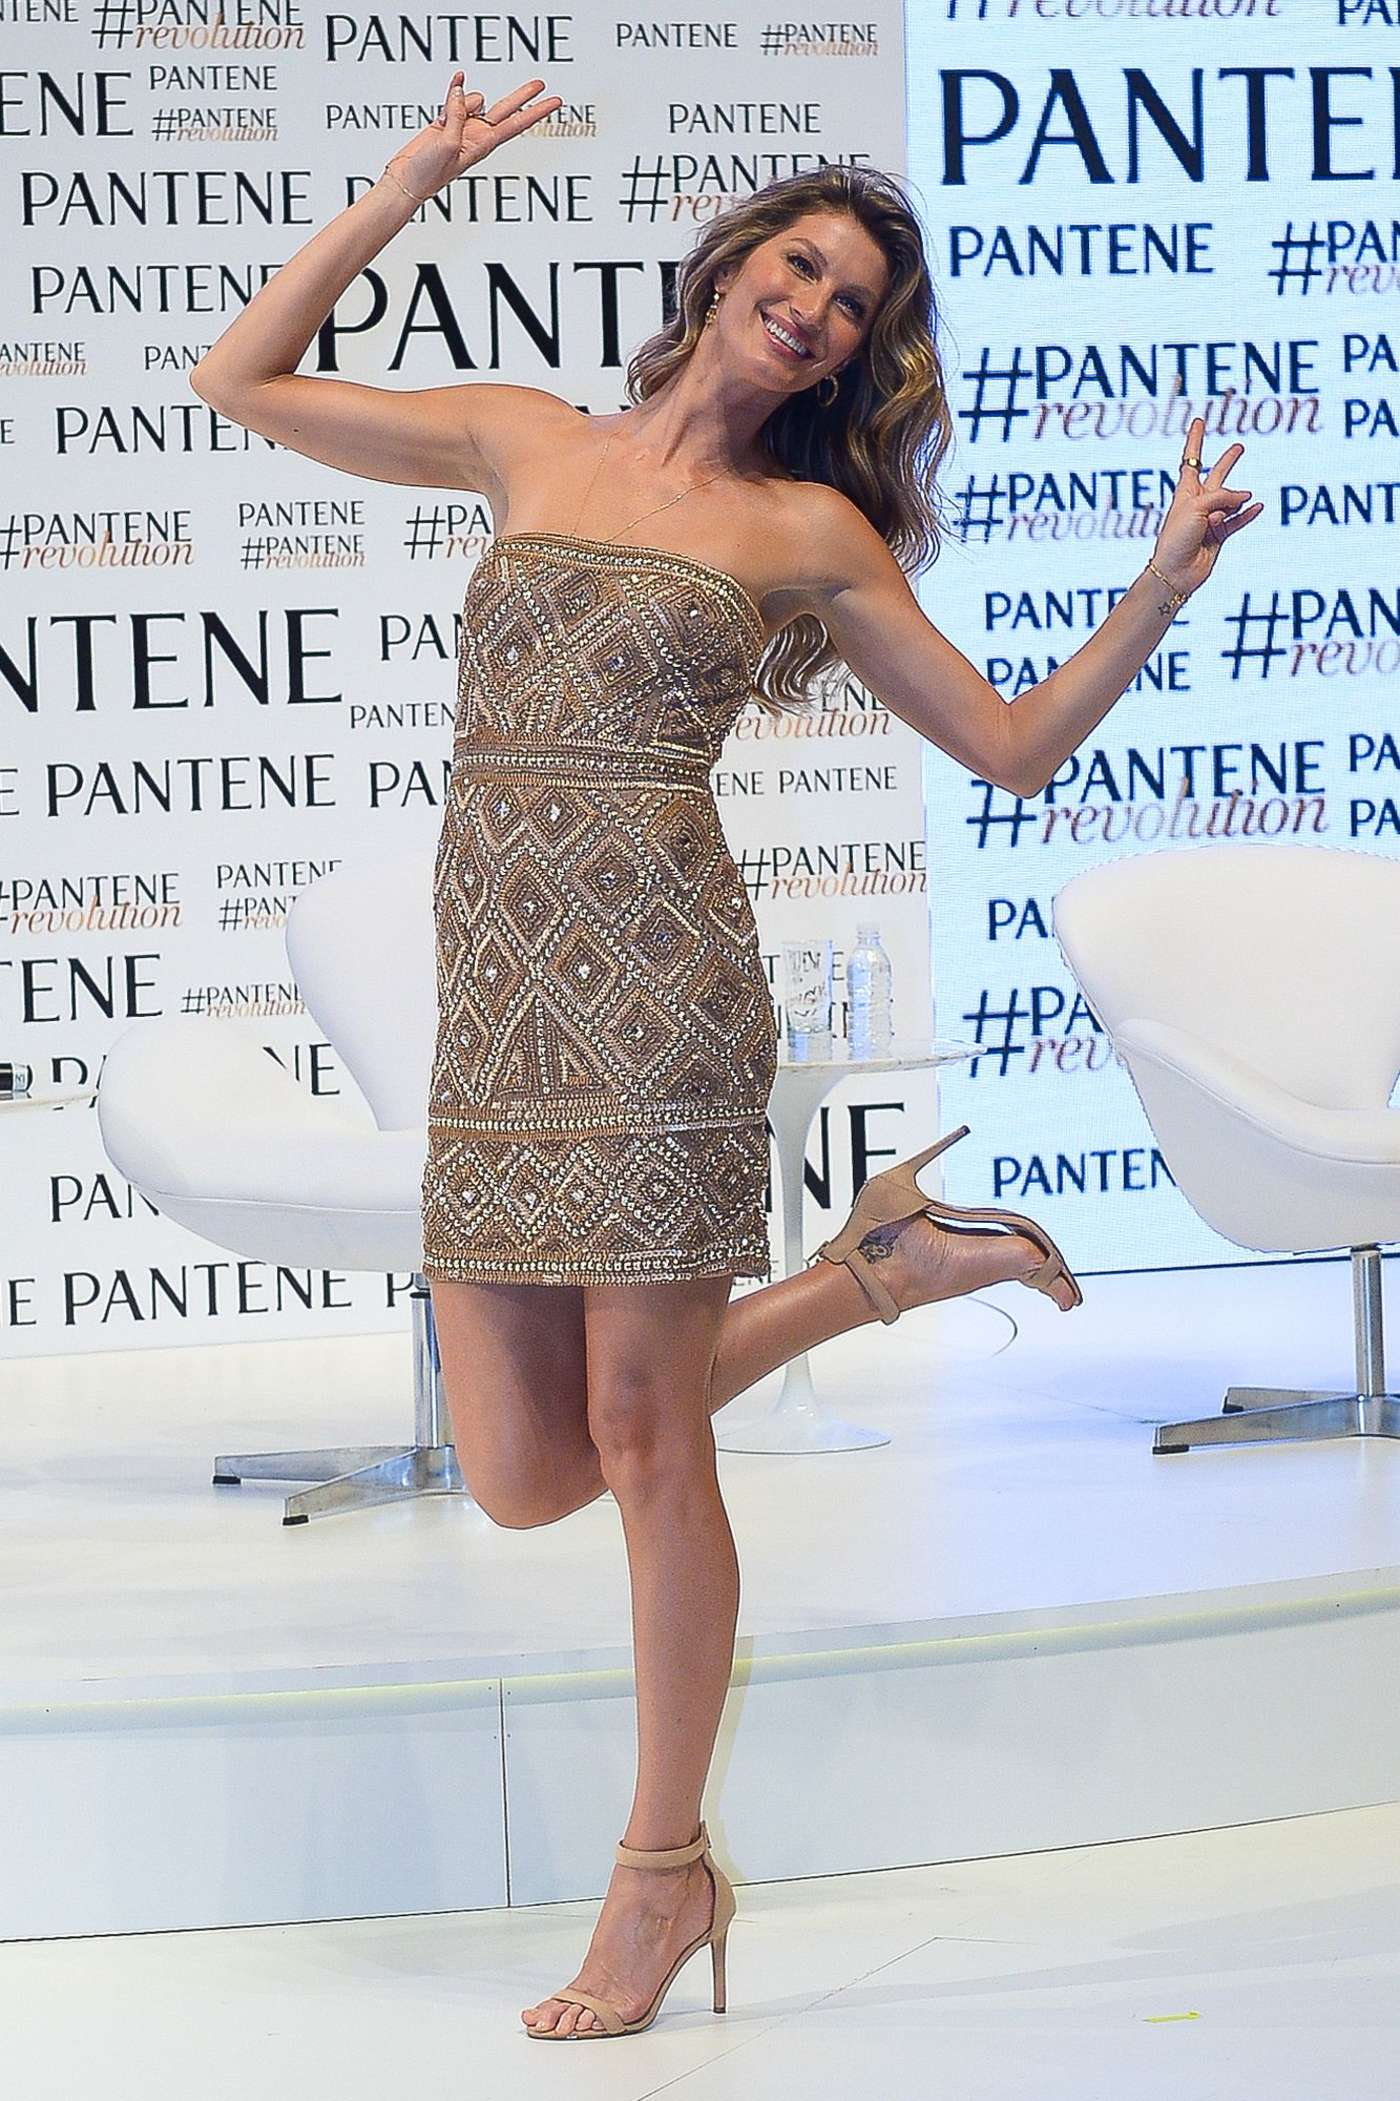 Gisele Bundchen Promoting Pantene in Sao Paulo